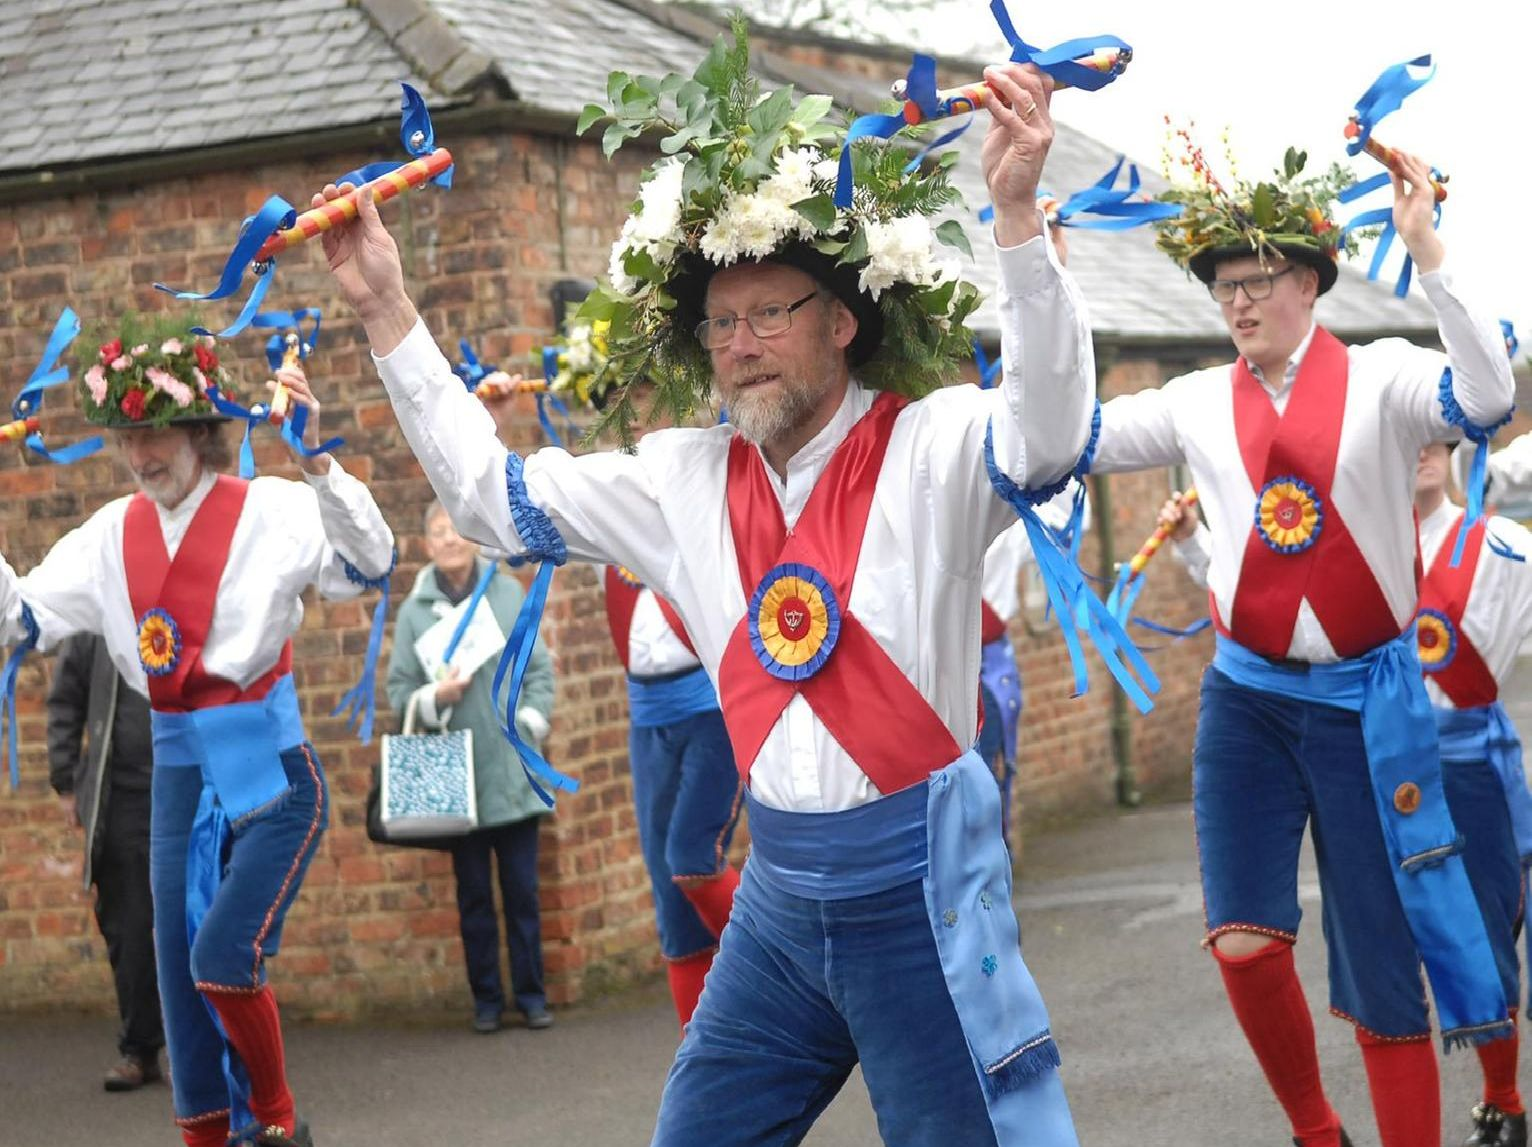 The Ripon City Morris Dancers will be performing at venues across the city on the day.